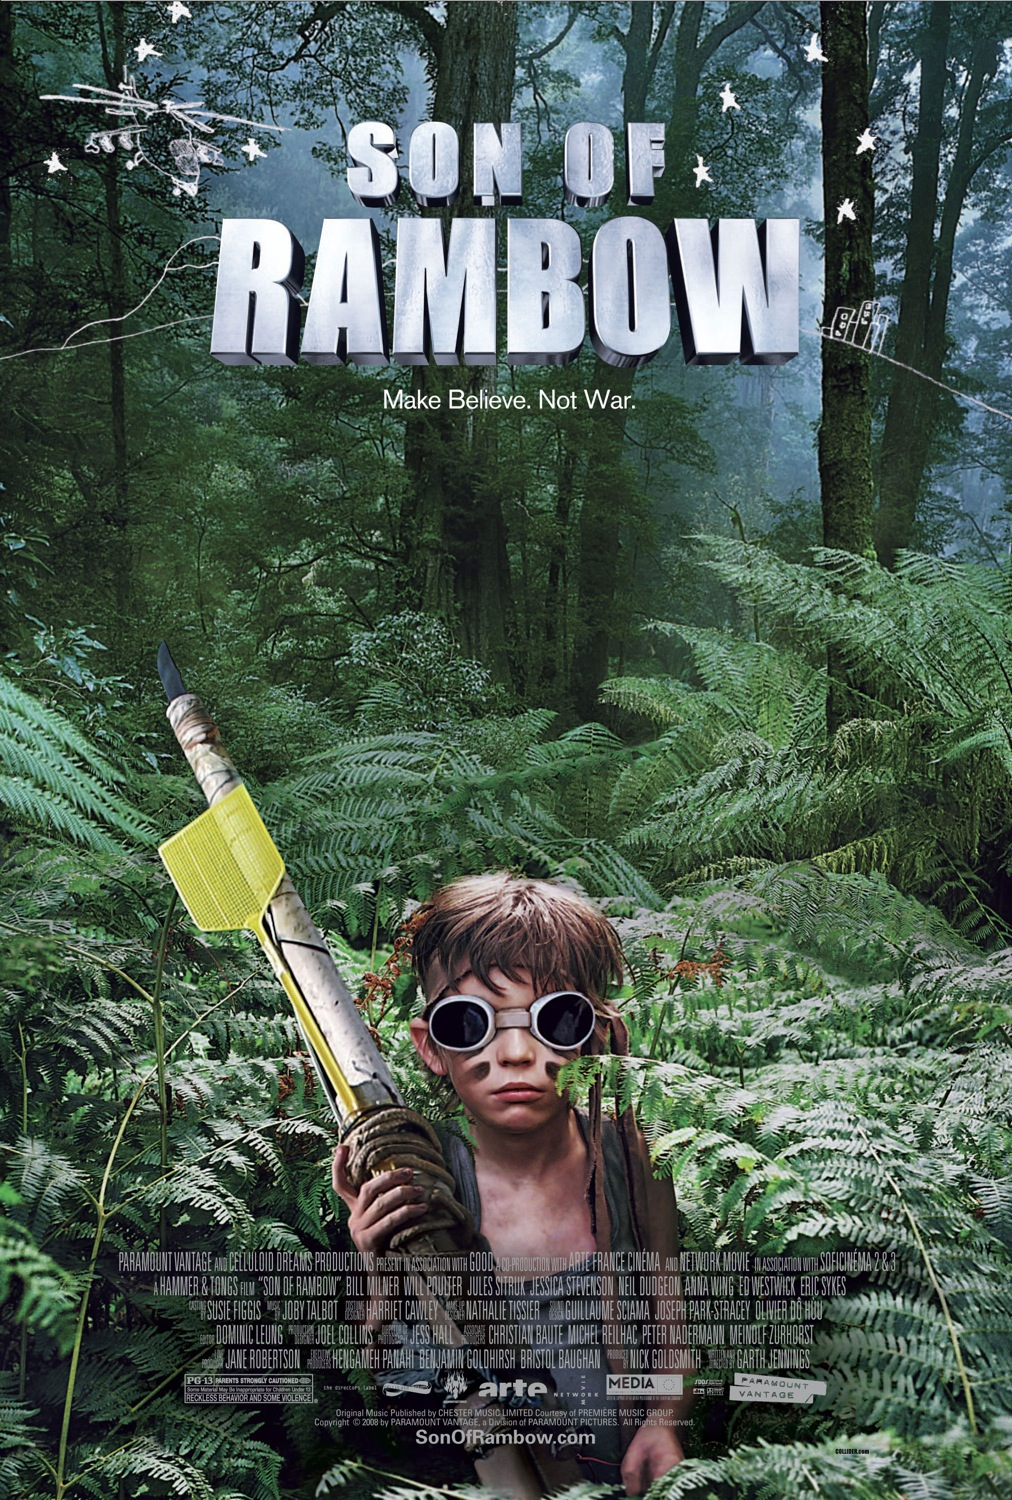 http://www.slashfilm.com/wp/wp-content/images/sonoframbowofficialposter.jpg